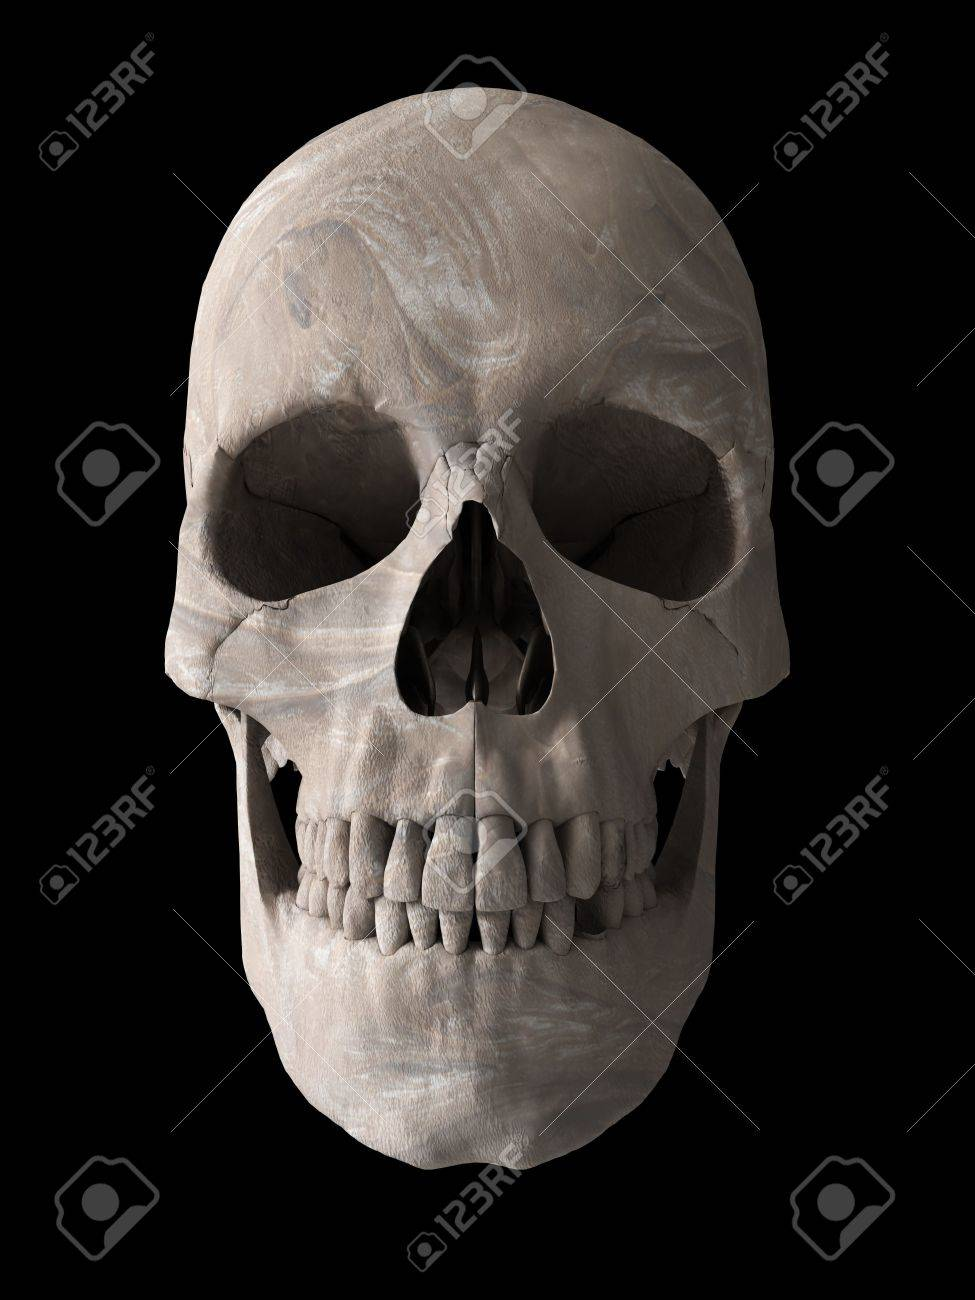 Human Skull Anatomy 3d Computer Generated Stock Photo, Picture And ...